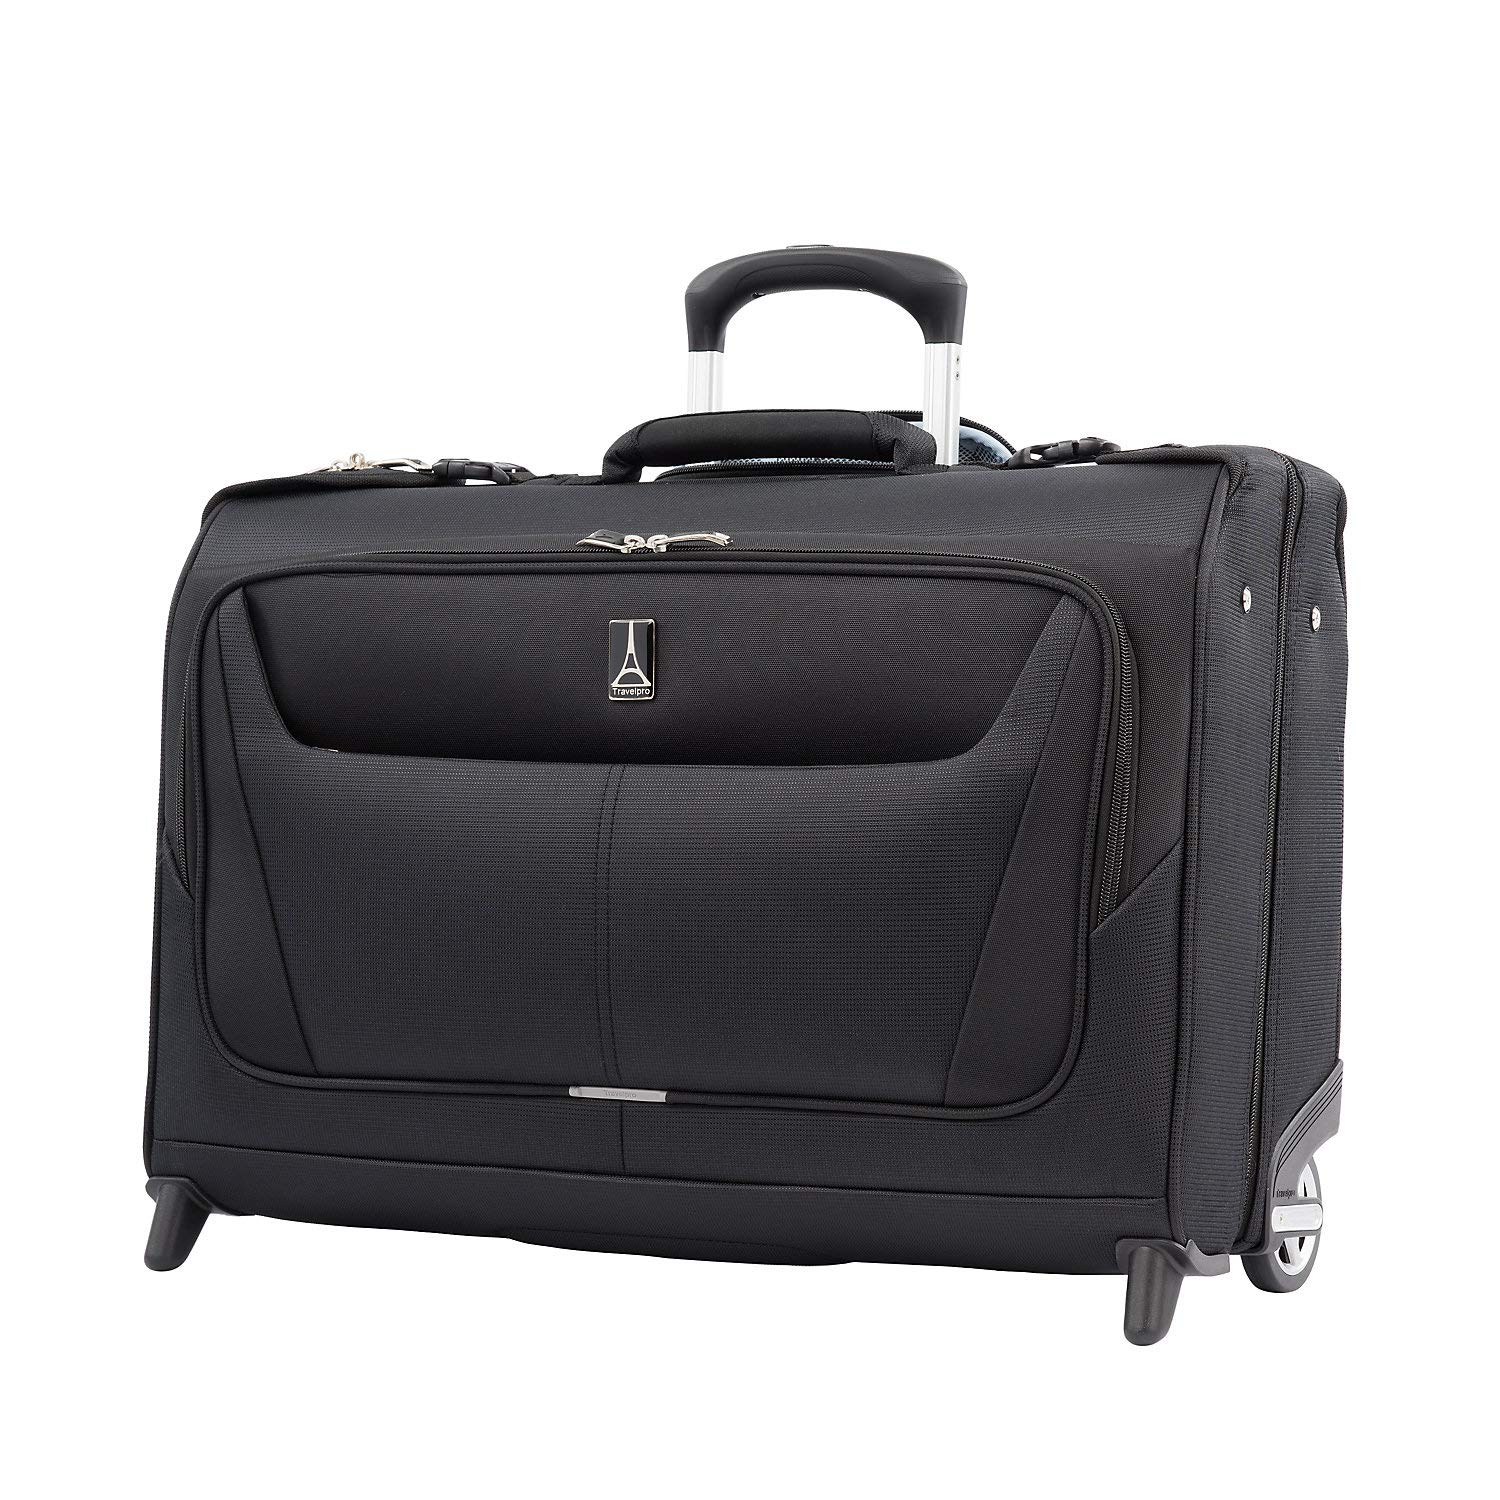 Top 5 Best Cheap Garment Bags for Travel and Business Trips In 2021 Reviews and Benefits